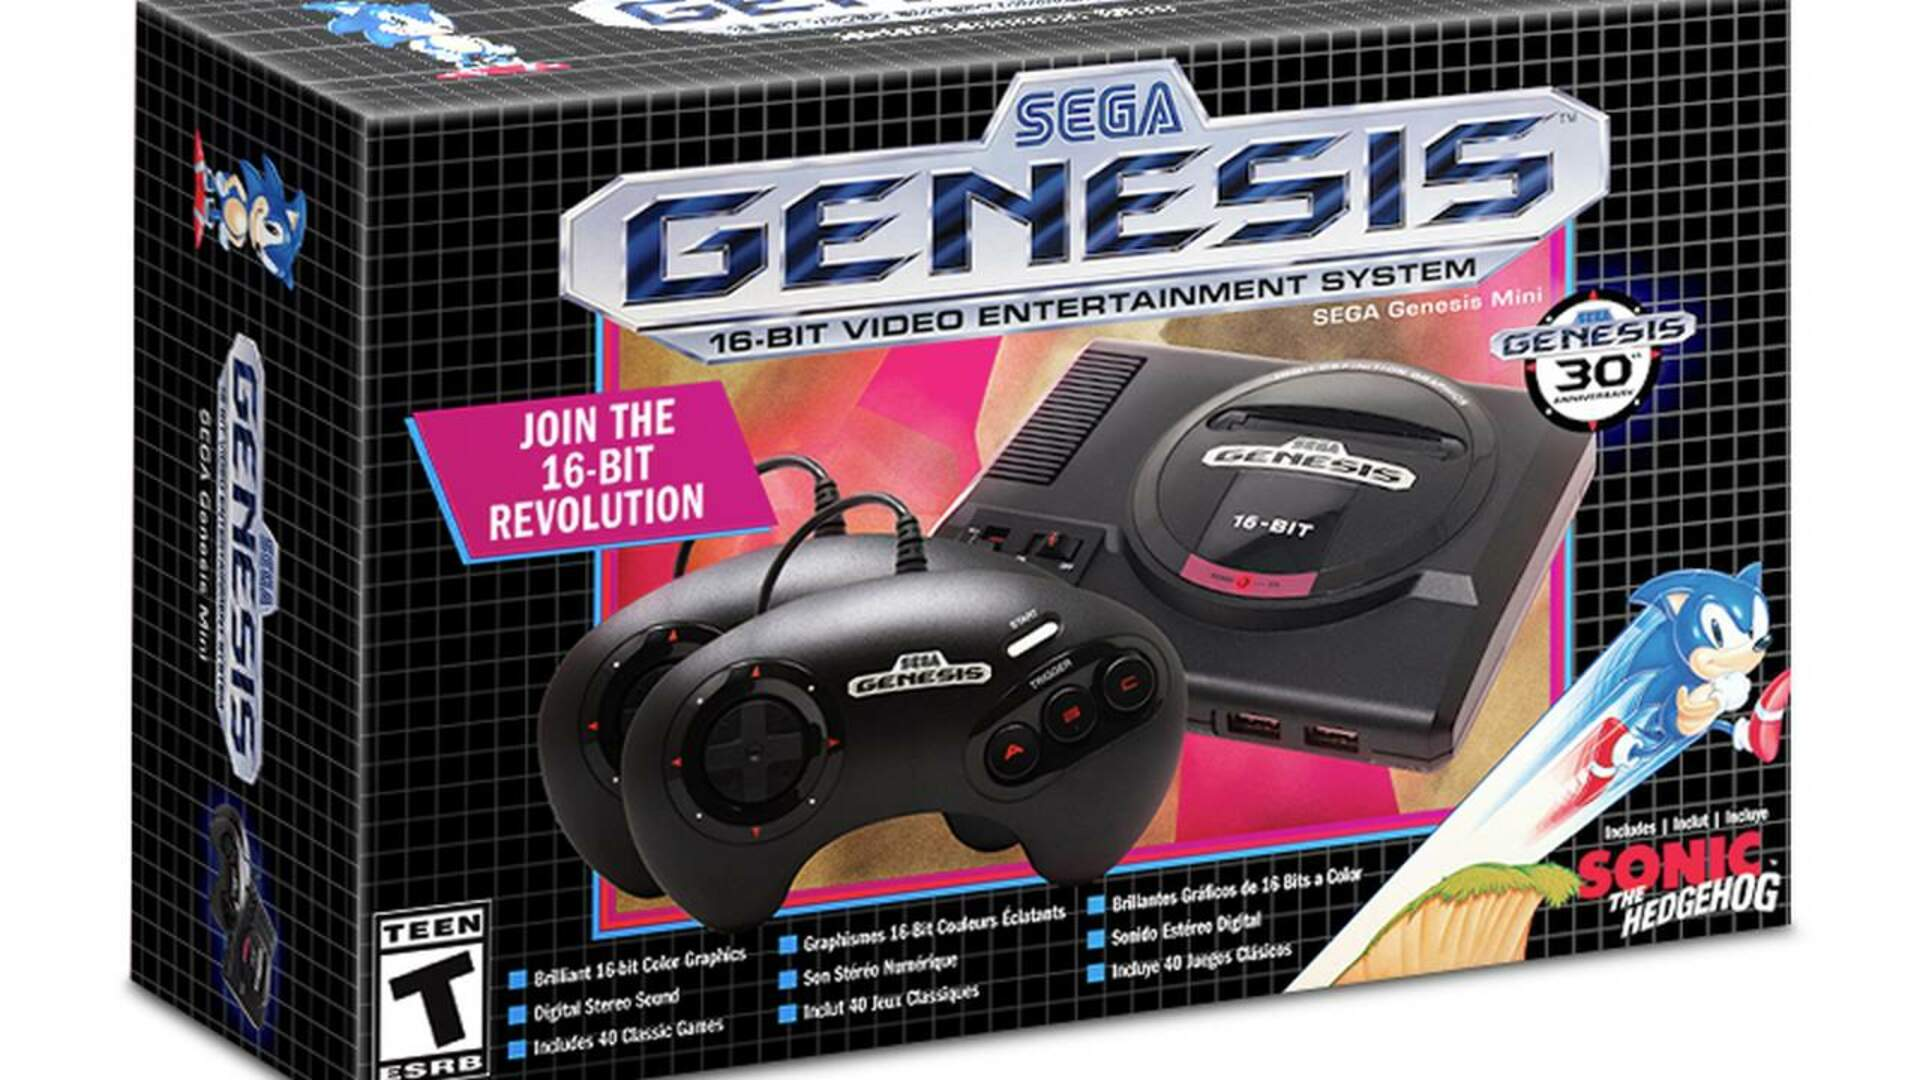 The Sega Genesis Mini's Full Line-Up Reveals More Games Than Promised